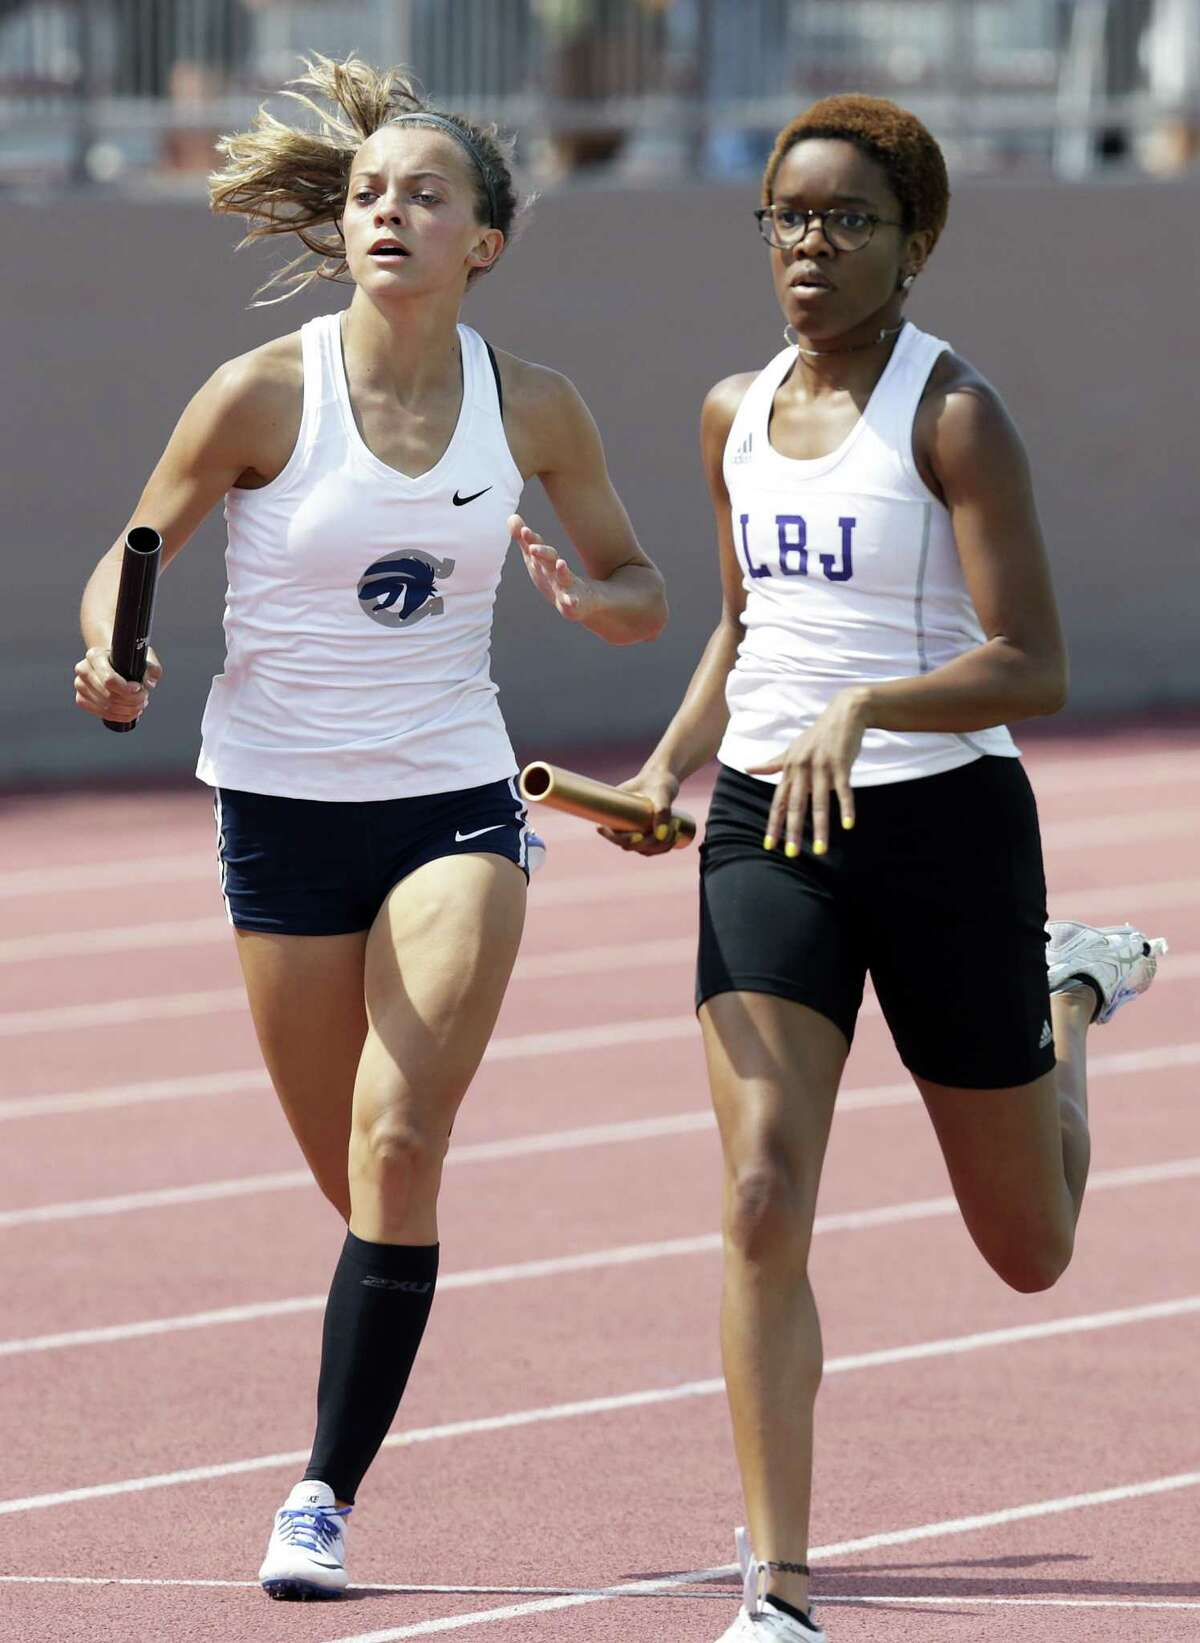 Layne Bolli of Boerne Champion overtakes to win the 4X400 for the Chargers during the Region IV-6A and Region IV-5-A track and filed meet at Alamo Stadium on April 28, 2018.